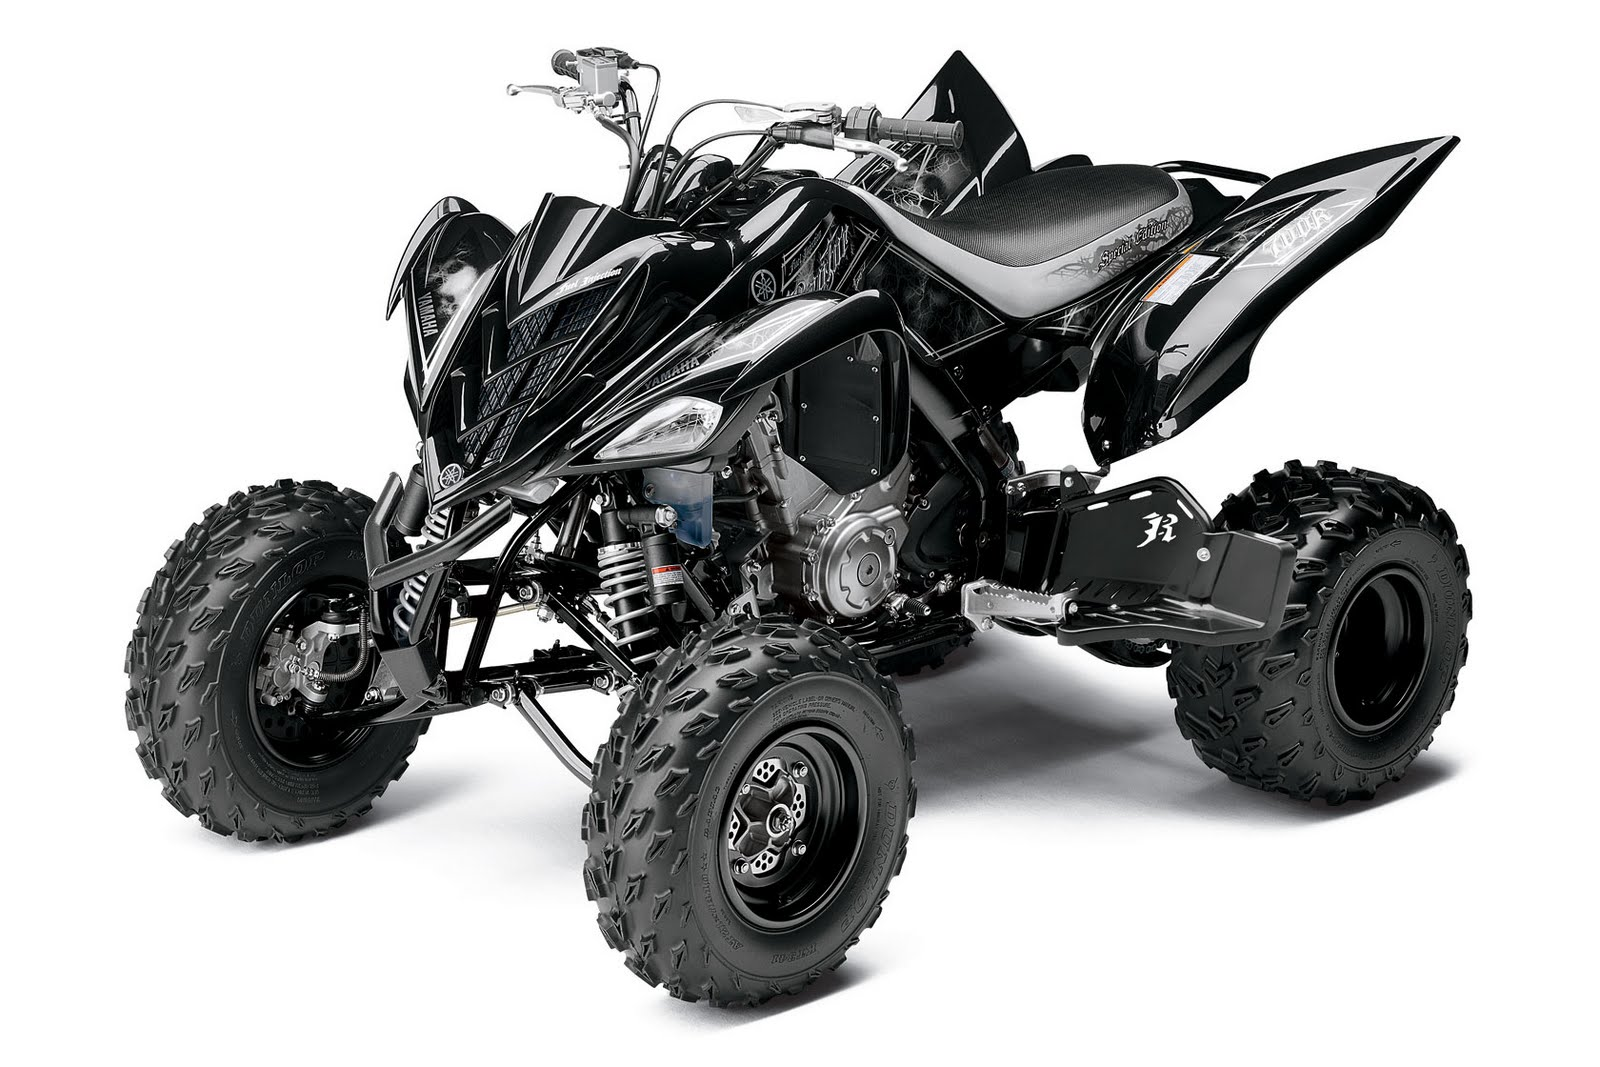 gambar atv yamaha terbaru raptor 700r se 2011 gambar foto. Black Bedroom Furniture Sets. Home Design Ideas